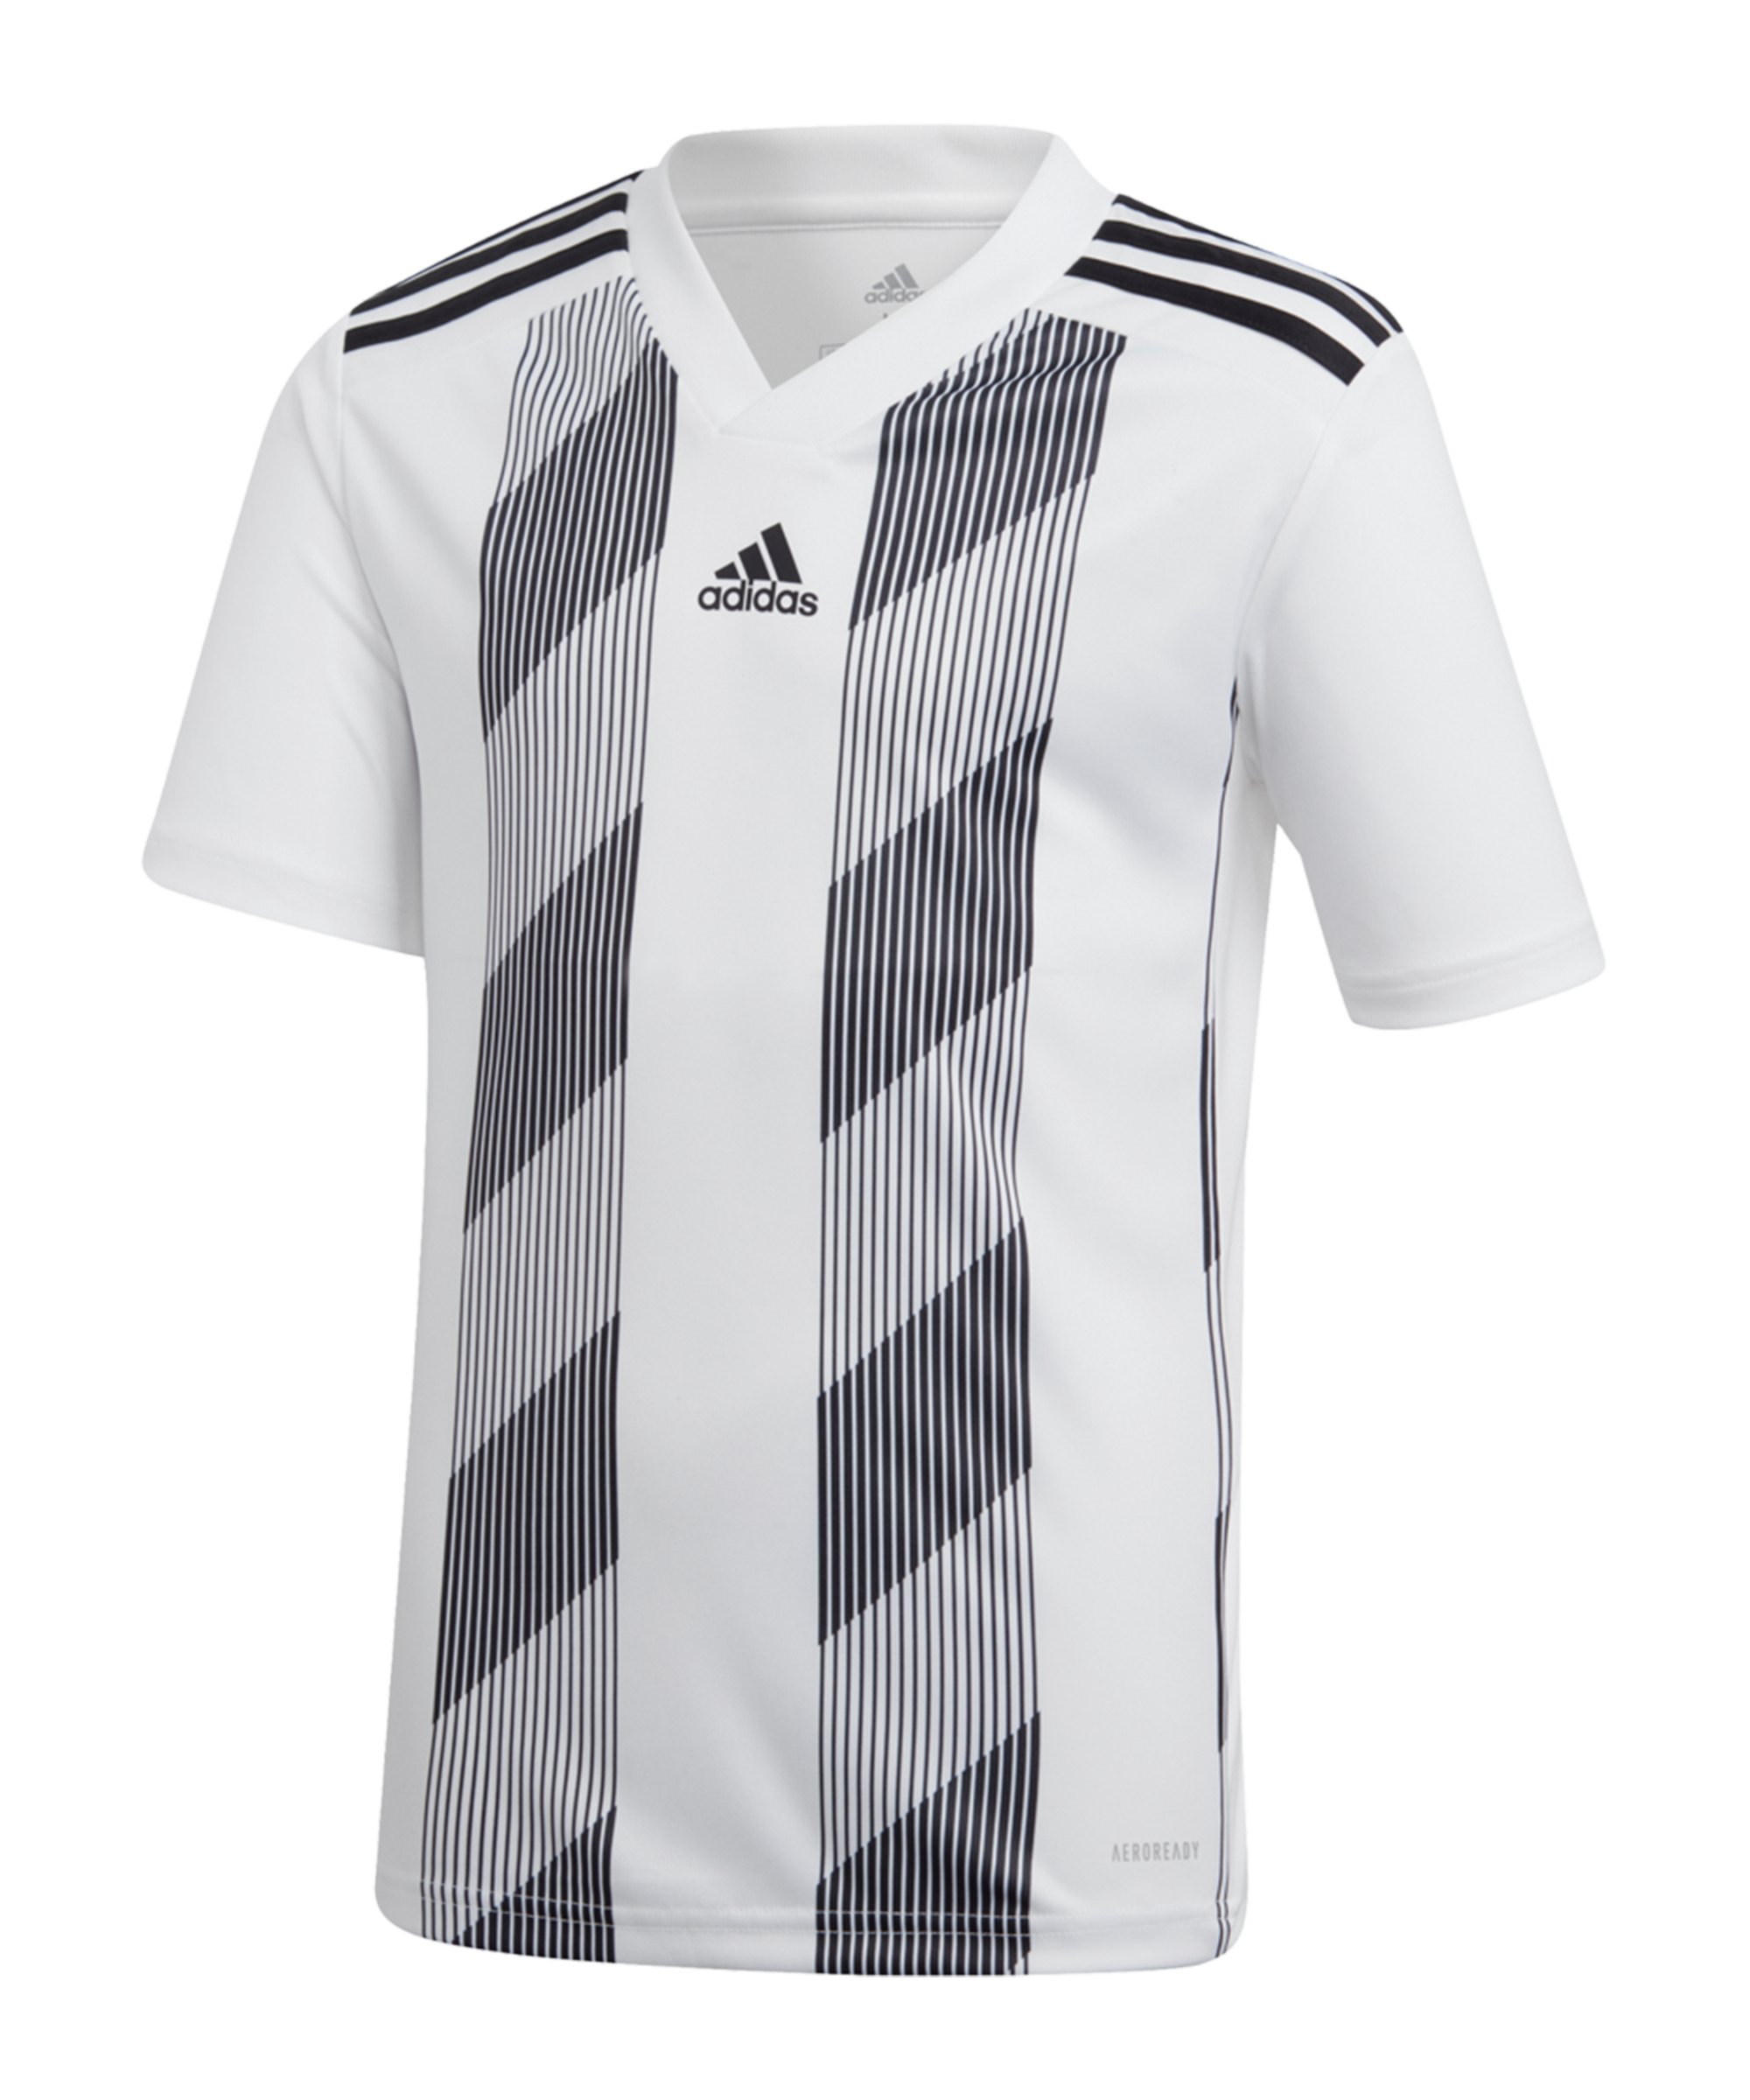 adidas Striped 19 Trikot kurzarm Kids Weiss - weiss